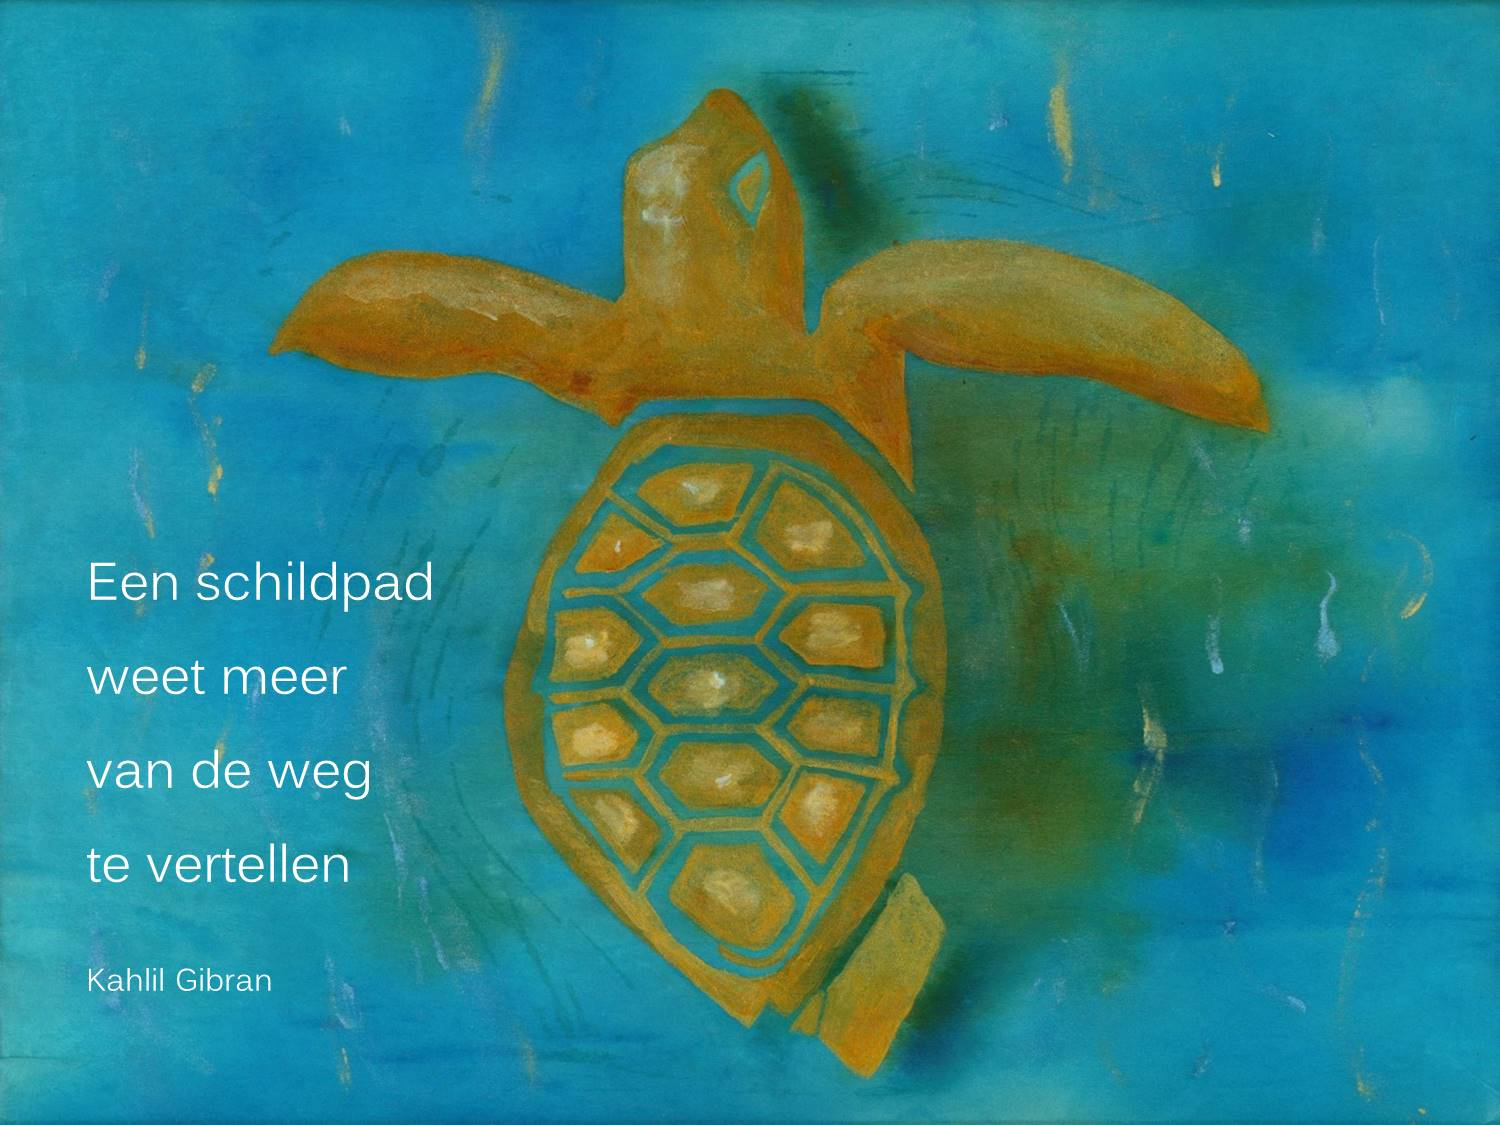 Citaten Kahlil Gibran : Inspirerende quotes over vrijheid wijsheid en optimisme